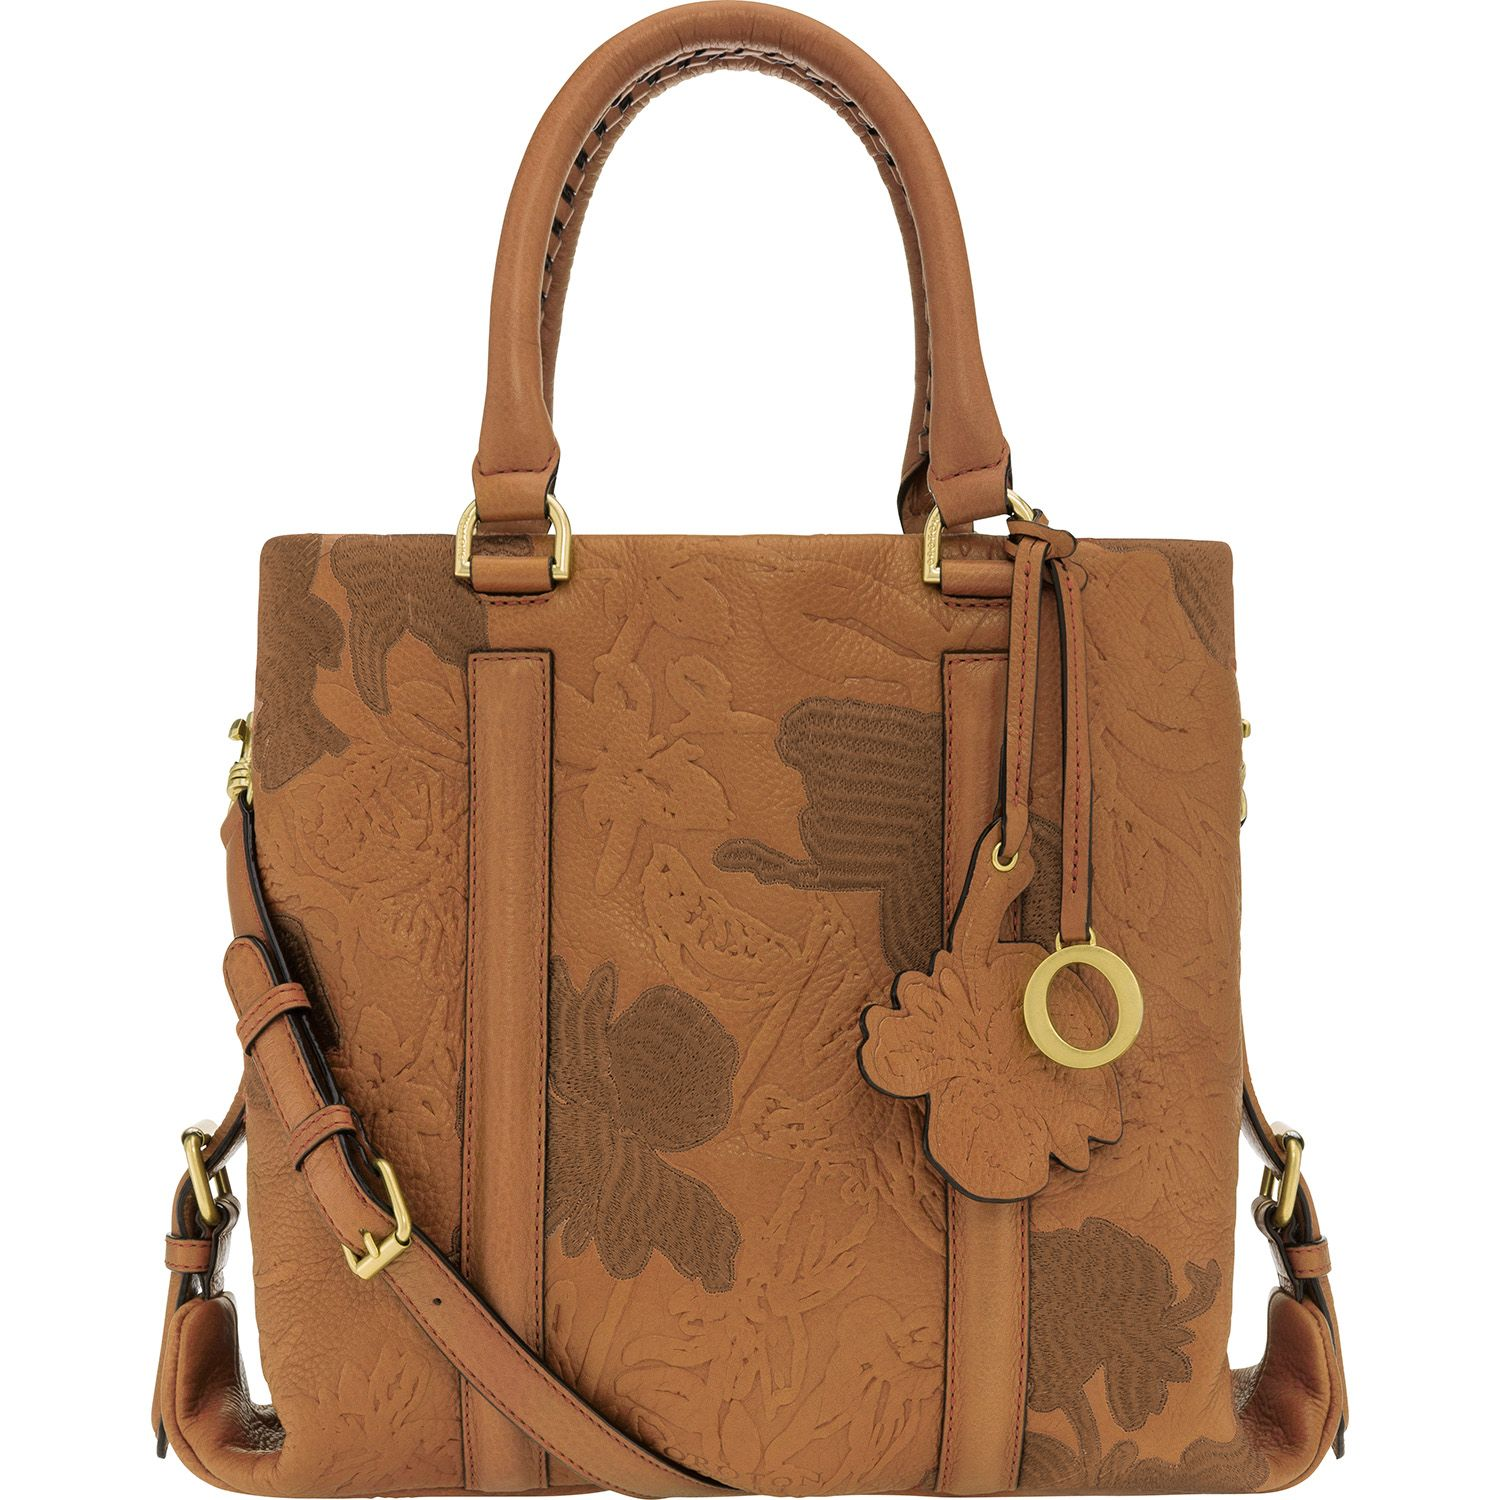 The journey by rose embroidered medium tote in tan